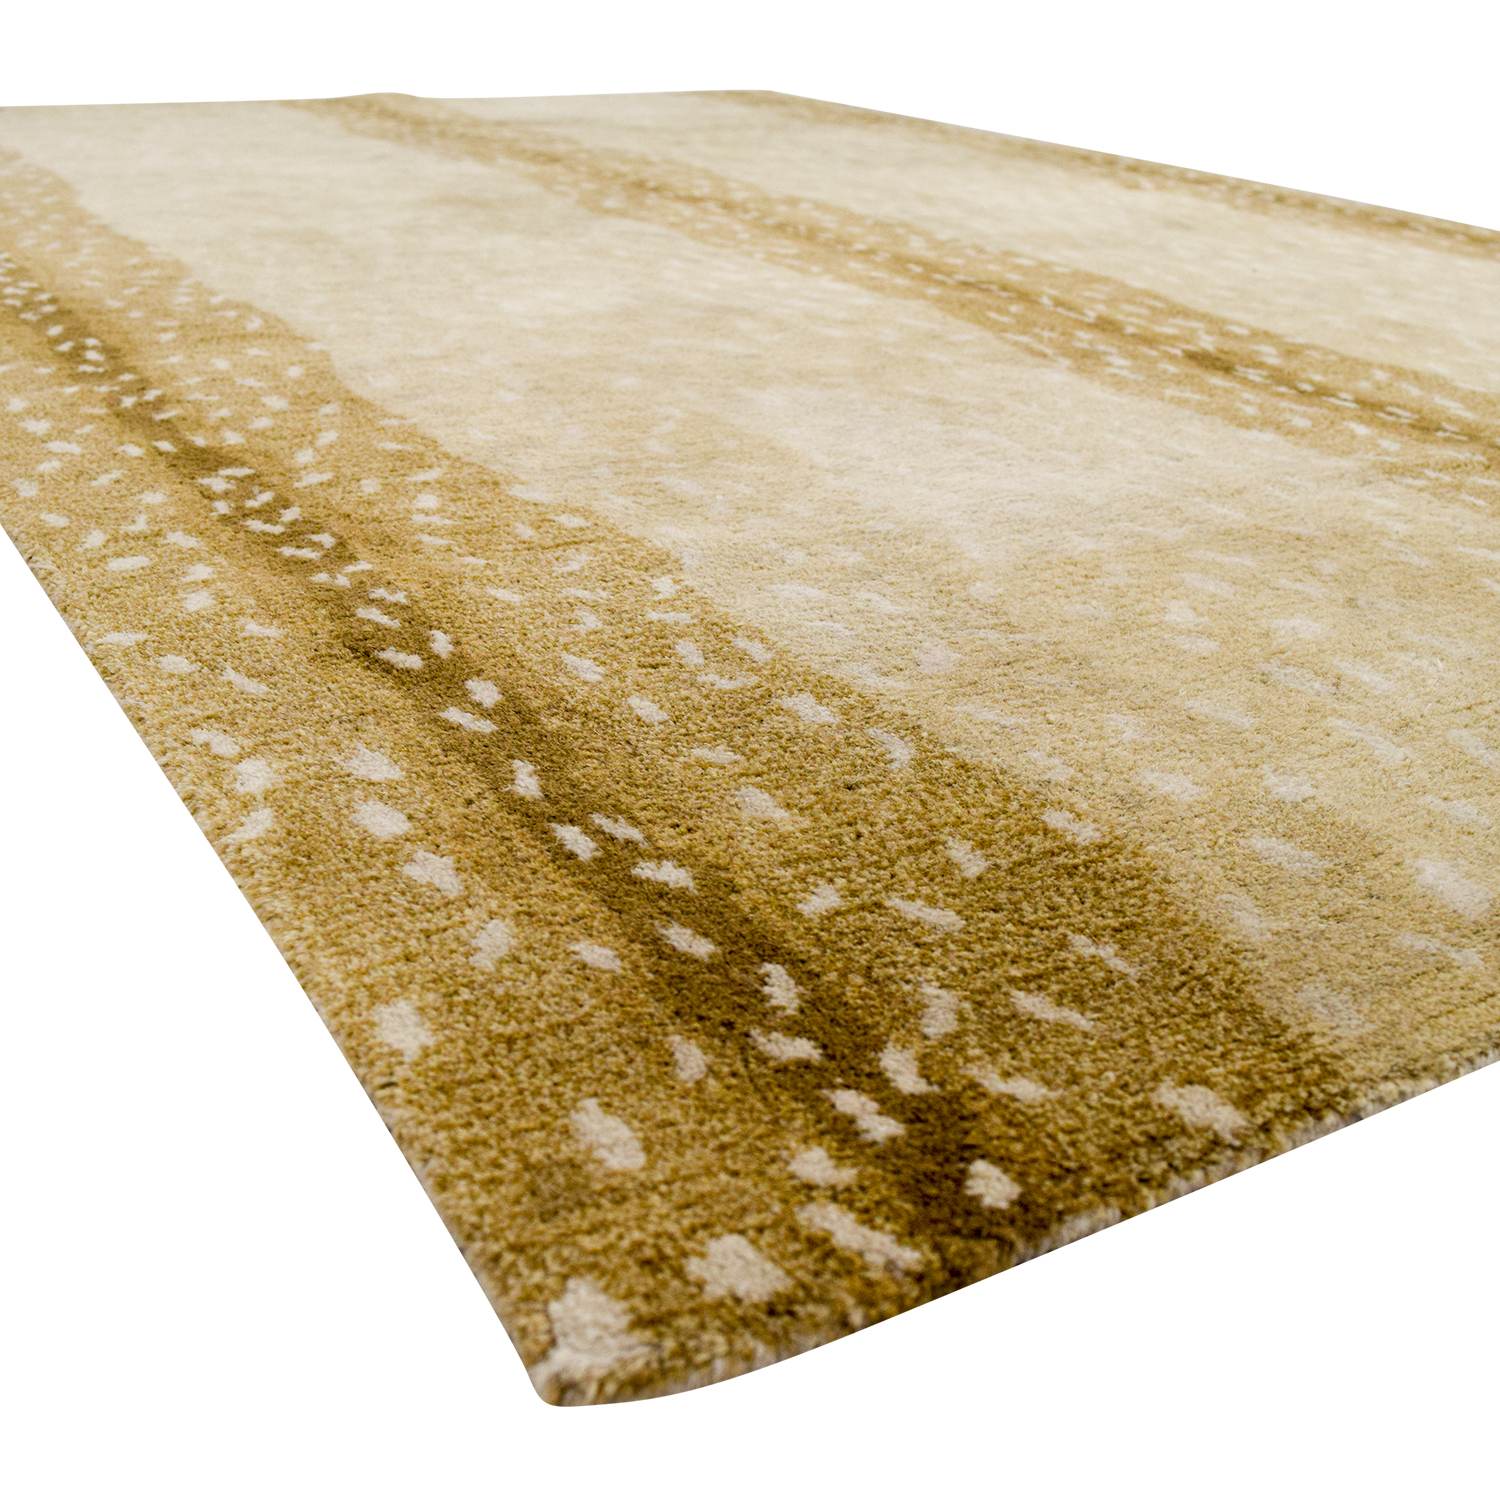 Antelope rug for sale cheap letus antelope getting that Antelope pattern carpet